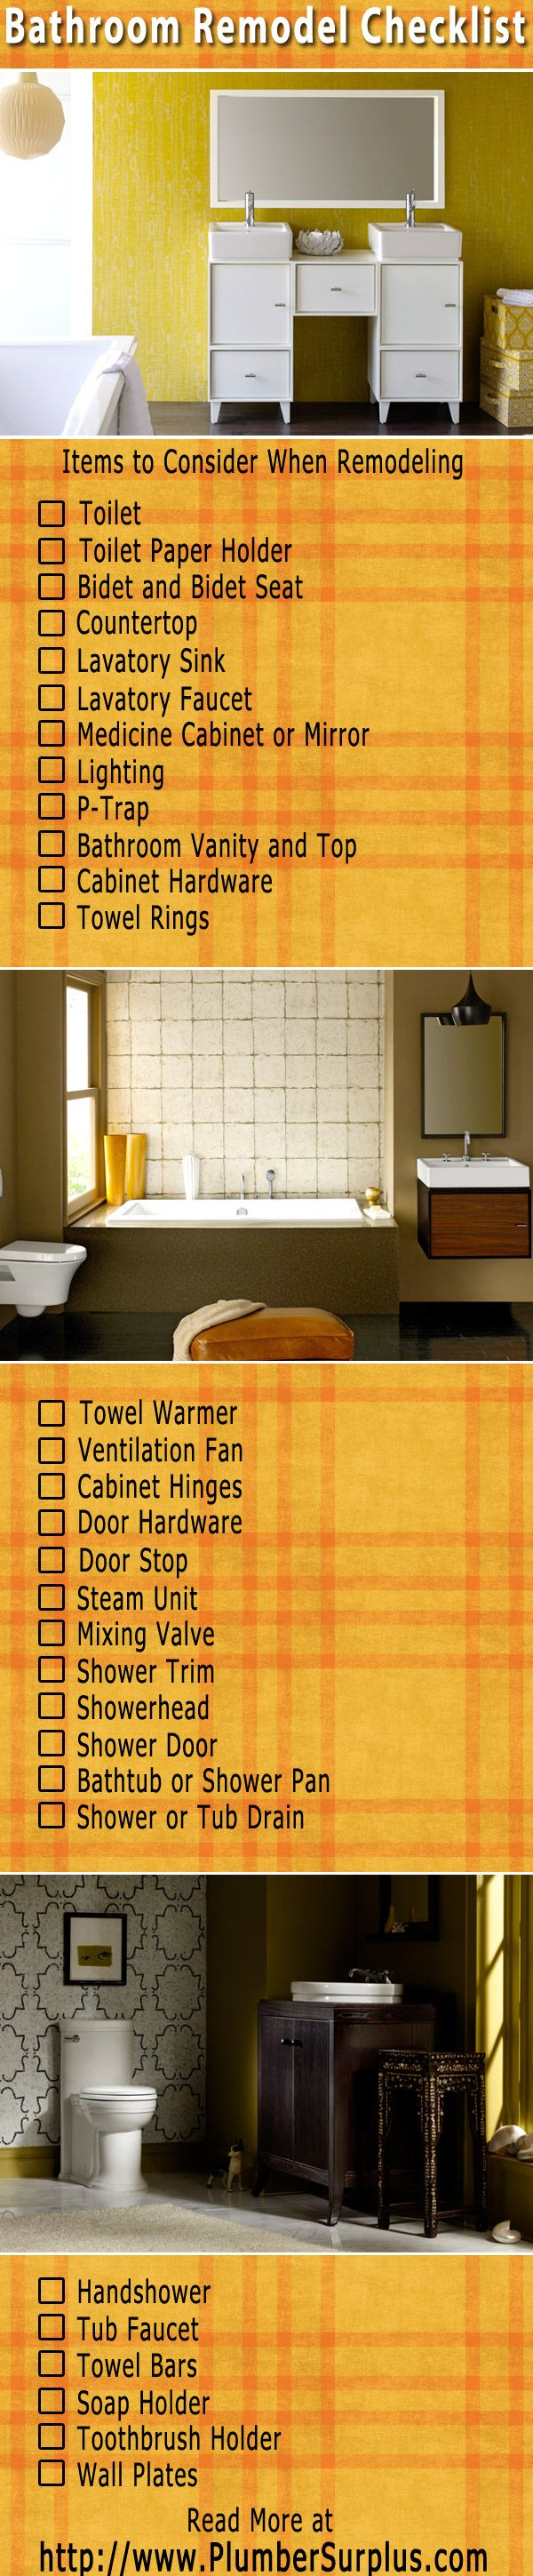 Starting a New Bathroom Remodel: A Bathroom Remodeling Checklist at PlumberSurplus.com